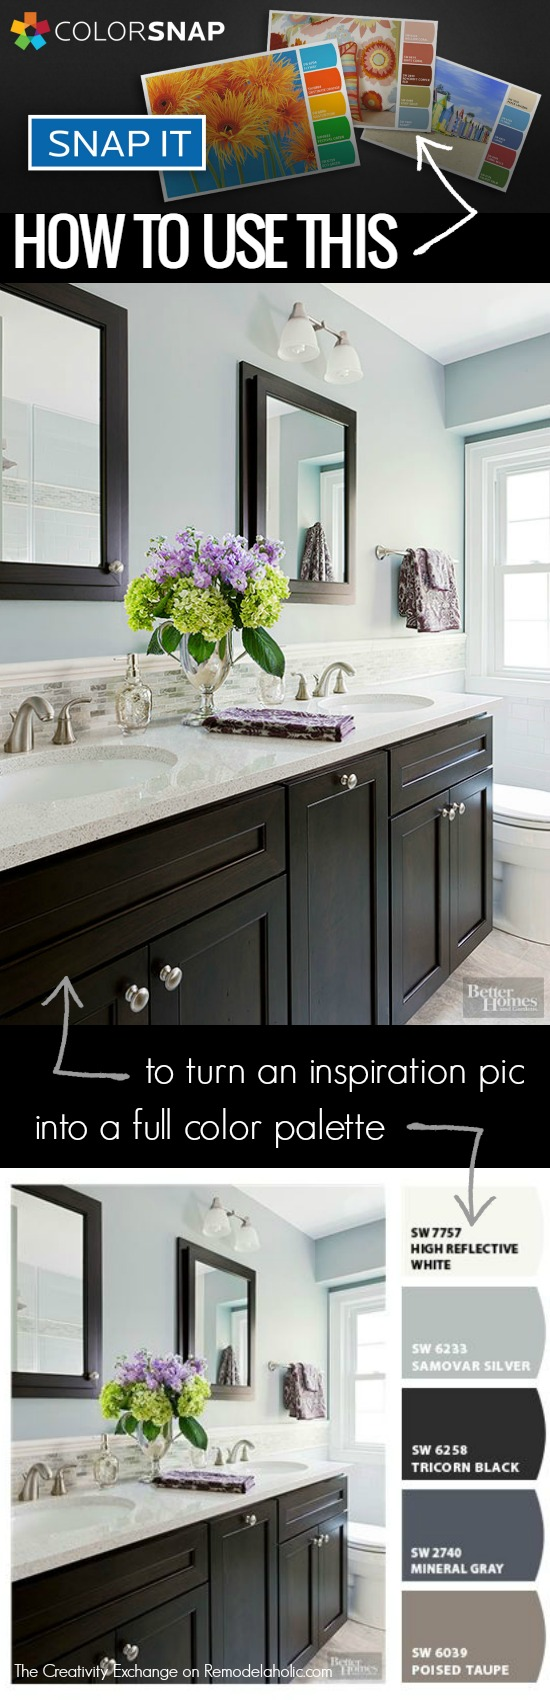 How to use this FREE online tool to create a color palette from an inspiration picture and use it to make decisions about your decor @Remodelaholic